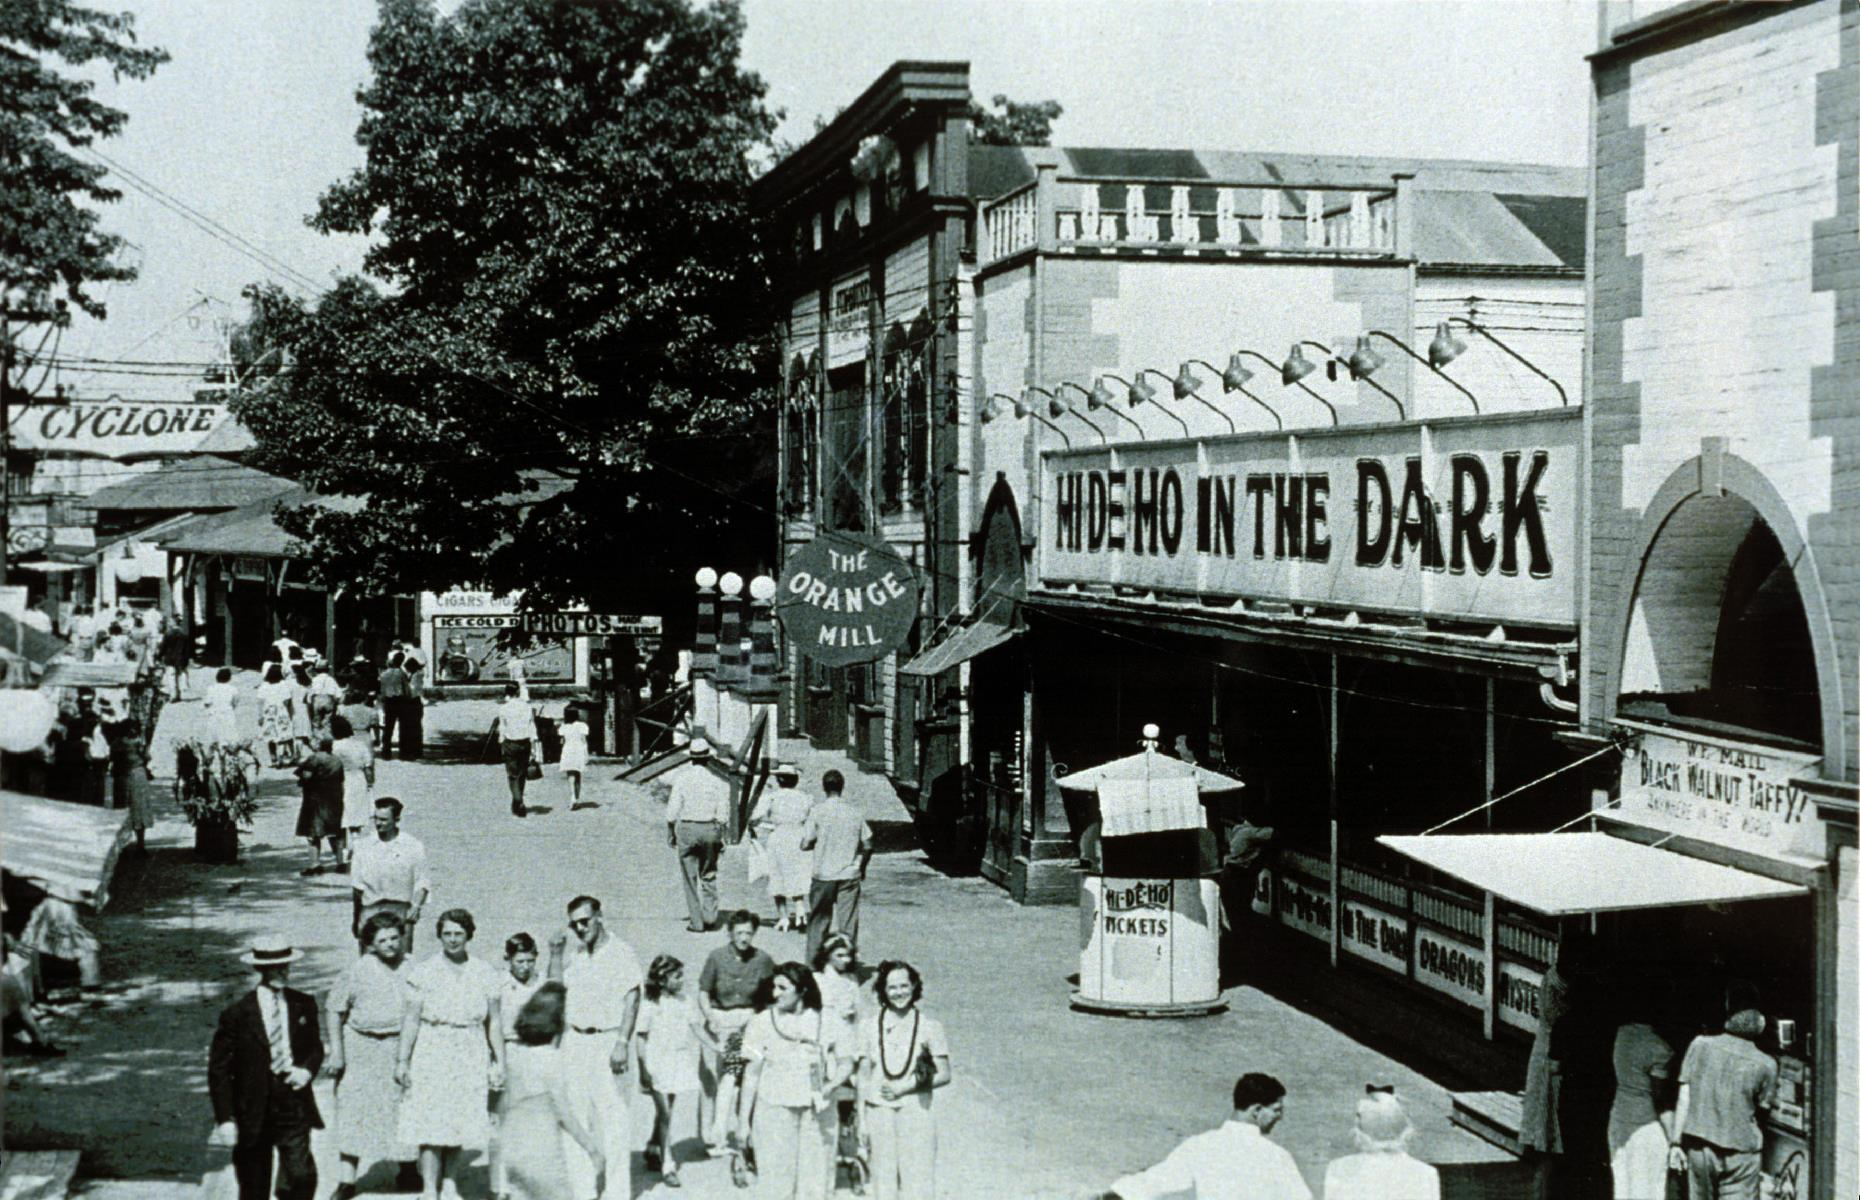 Slide 40 of 47: It's not all about white-knuckle rides though – roller coasters in the 150-year-old park sit alongside kitsch carousels and other kid-friendly attractions. Back in the day, Hi De Ho In The Dark, the colorful fun house pictured here, was a popular family amusement.